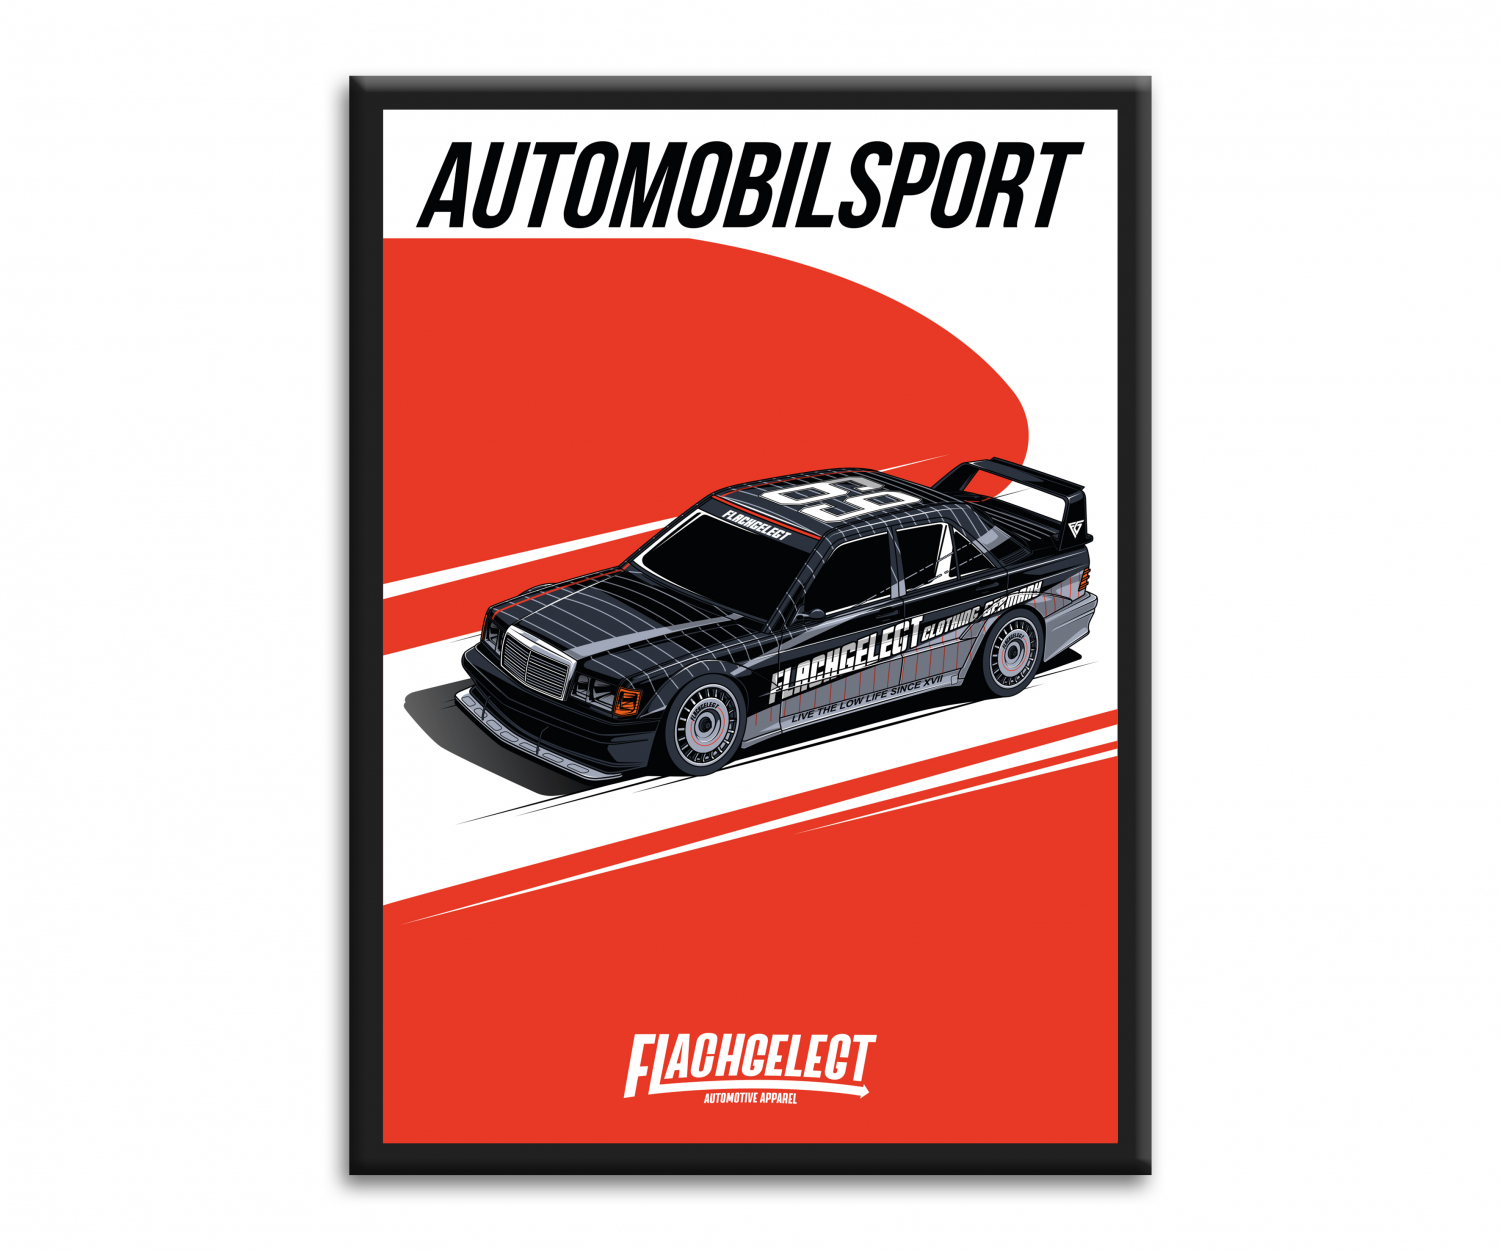 AUTOMOBILSPORT - LIMITED ARTWORK A2